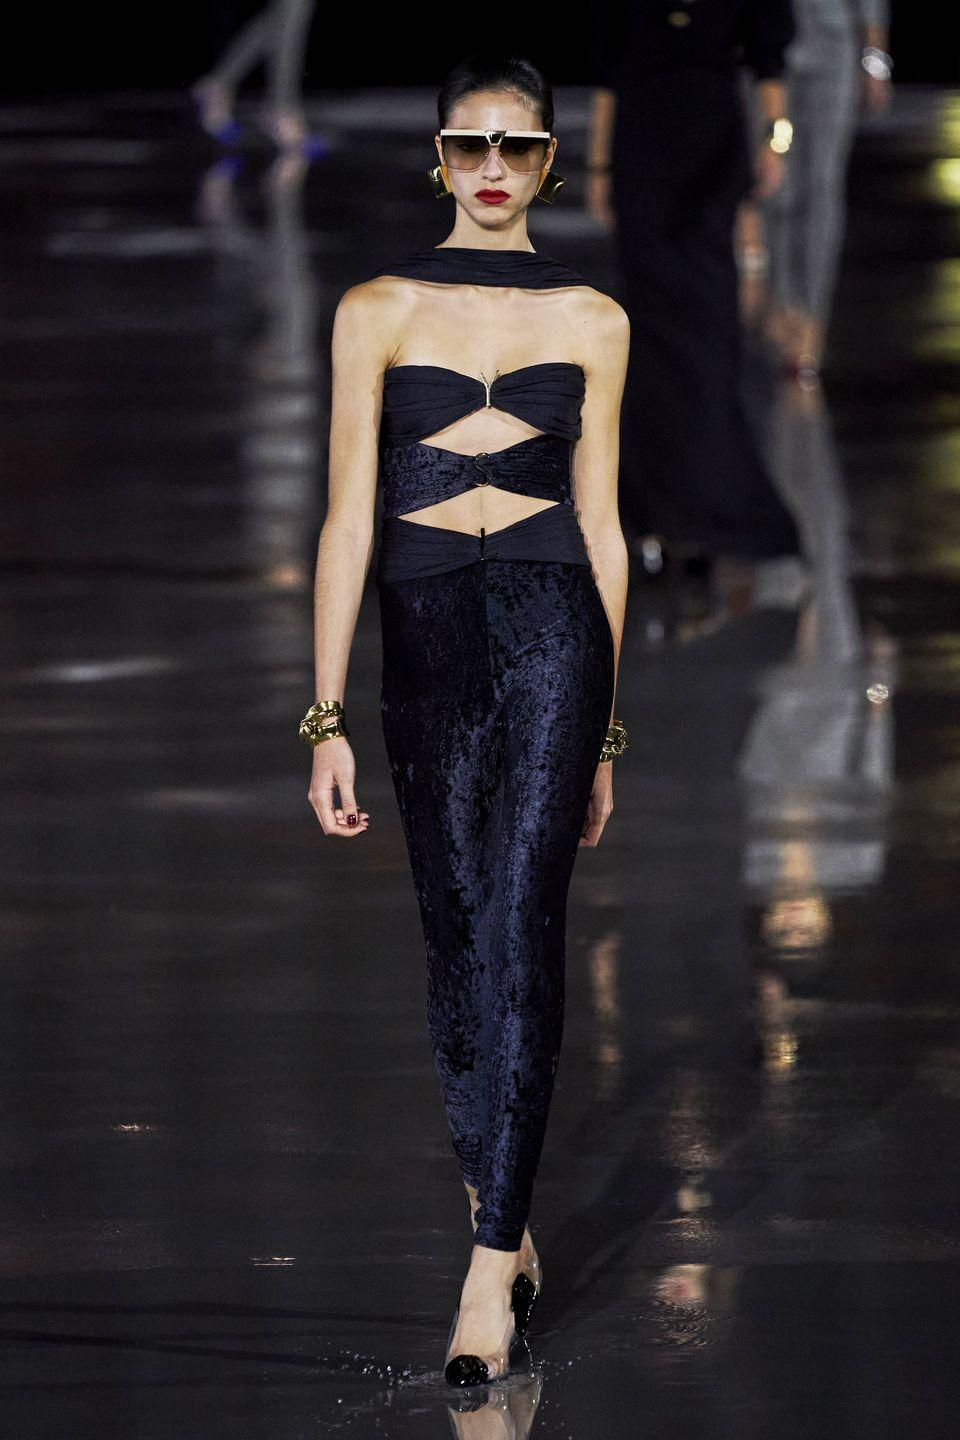 """<p>The spring/summer 2022 Saint Laurent collection referenced a """"fundamental yet not well-known moment"""" in Pierre Bergé's career, one which led him down a new artistic path. </p><p>This moment was summed up in a quote: """"We were invited to a friend's house who was throwing a party. At one point, I no longer spot Yves. I look for him and find him with a young unknown girl. She had wedge heels, a turban on her head, and things she had tinkered into clothes. It was Paloma Picasso.""""</p><p> The collection paid tribute then to Paloma Picasso's independence of spirit: """"Her freedom, her instincts, her energy which let her breathe freely....A celebration of a woman who is singular in every way, effortlessly inventive in every aspect of her appearances, always projecting a studied nonchalance. She thrillingly unsettles with her way of associating the masculine with the glamourous.""""</p>"""